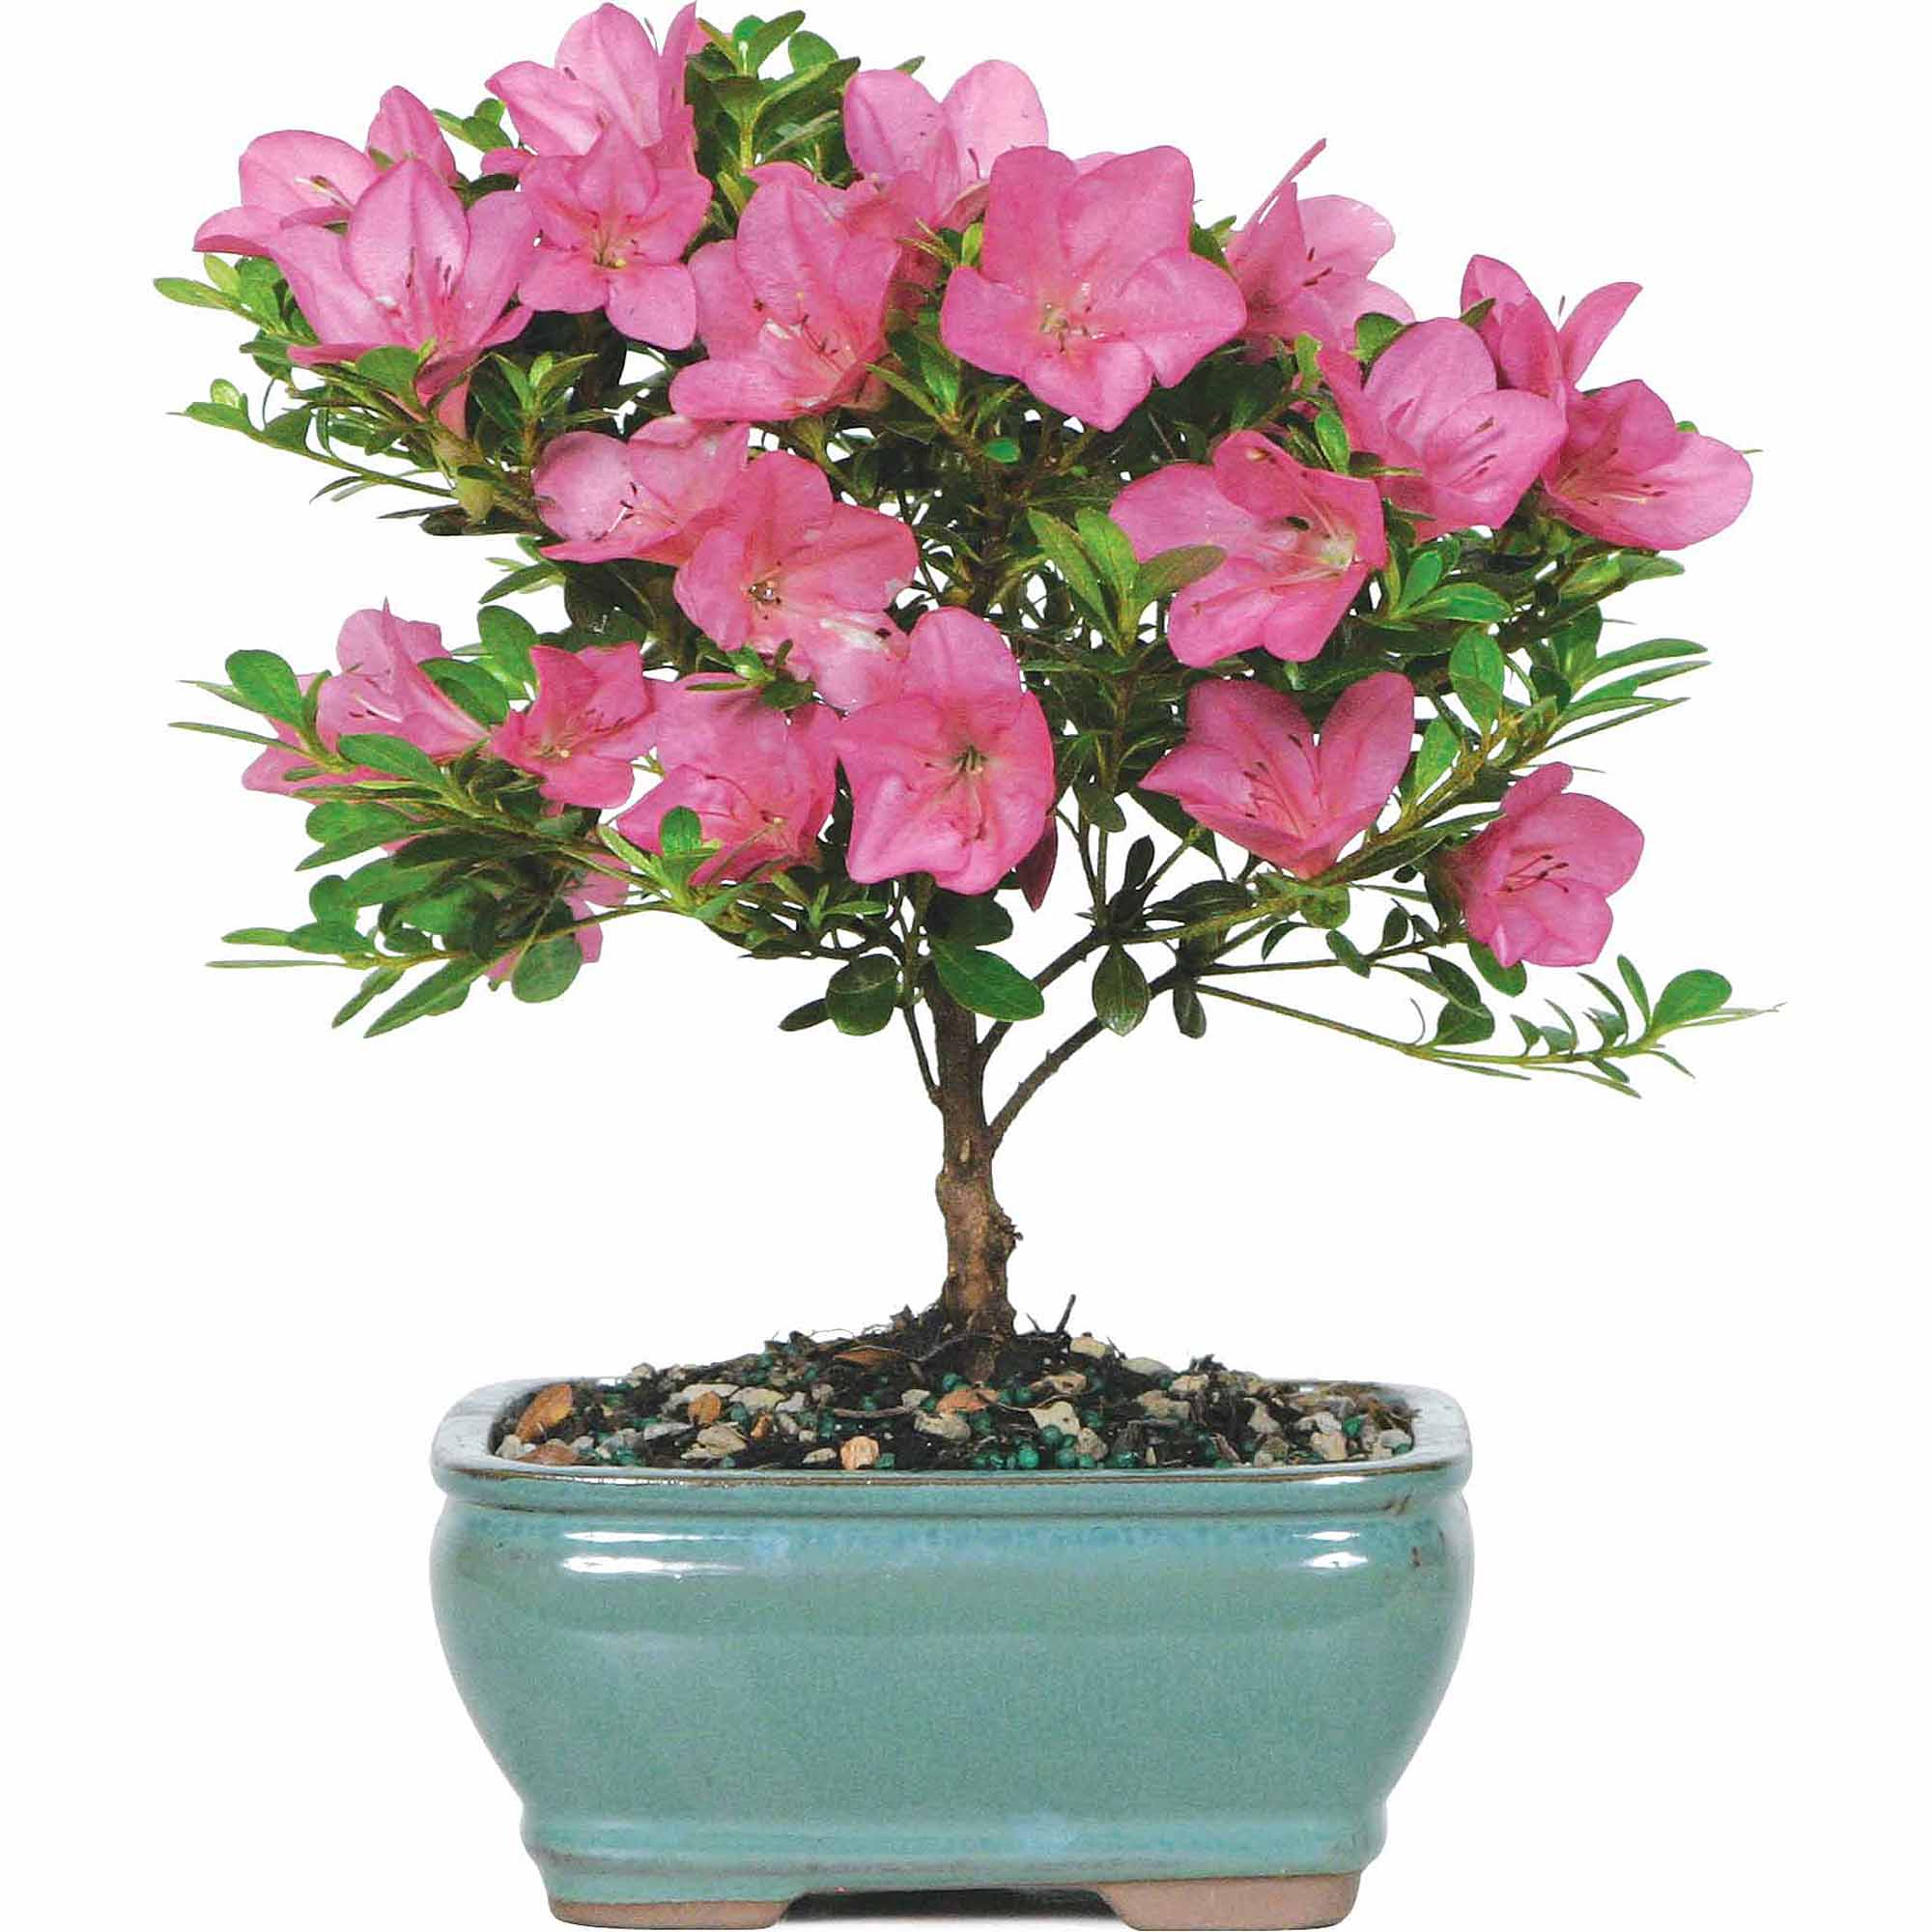 Brussel's Satsuki Azalea Bonsai Small (Outdoor) by Brussel's Bonsai